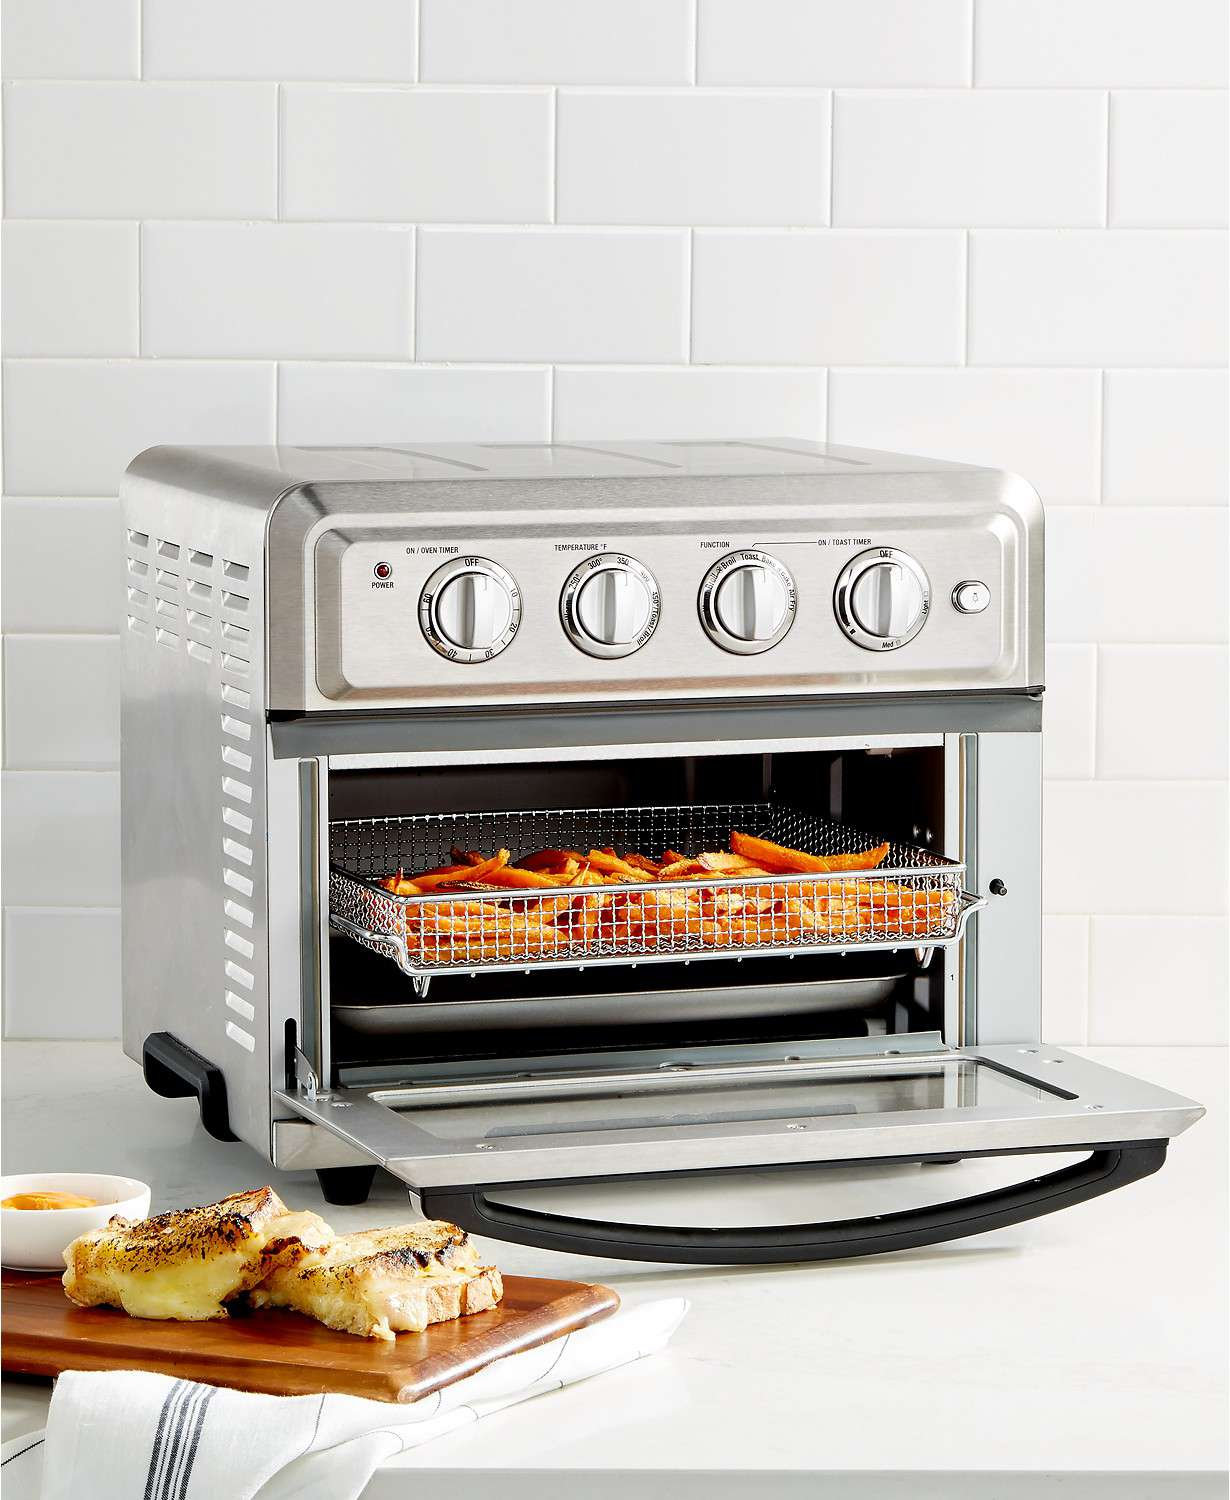 the 7 best toaster ovens of 2021